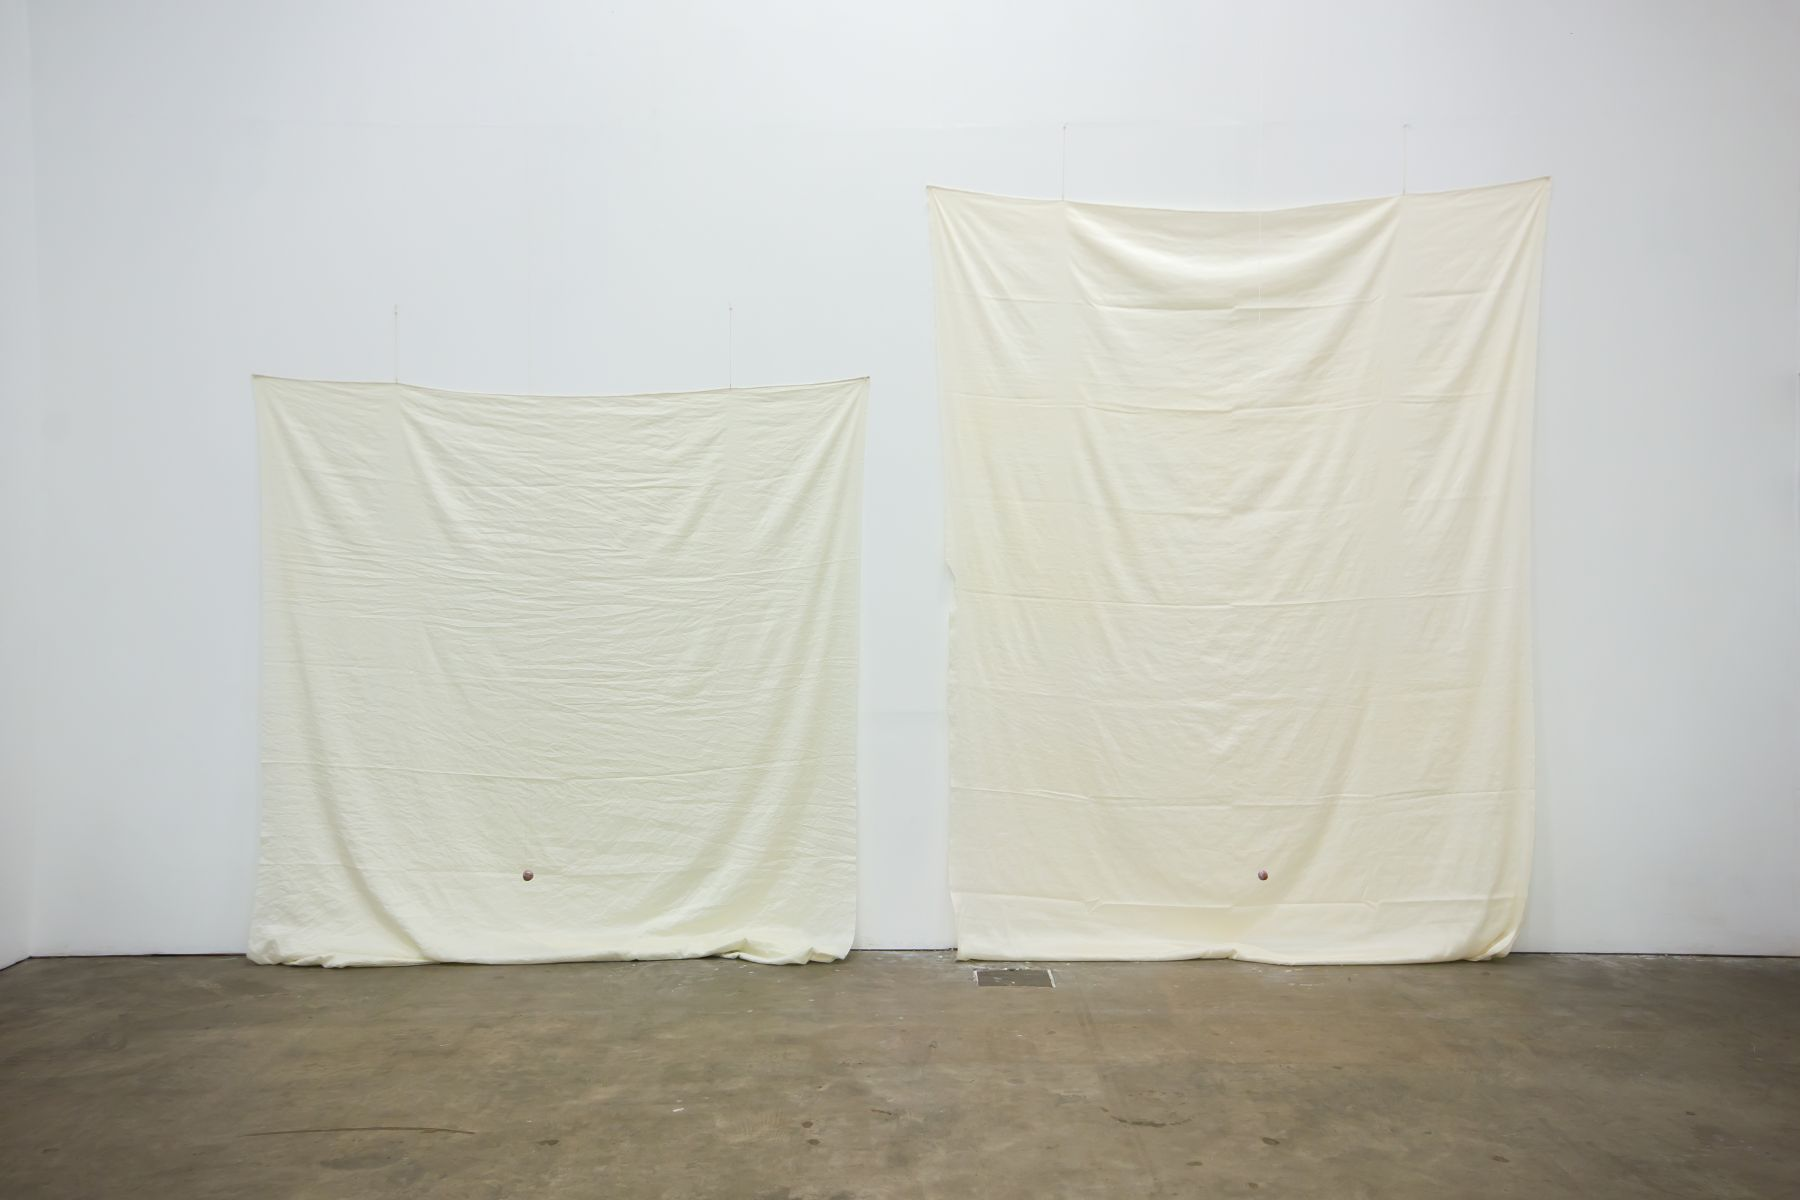 Polly Apfelbaum, Shades of White, 2019, installation view, Ikon Gallery, Birmingham, United Kingdom (2019)